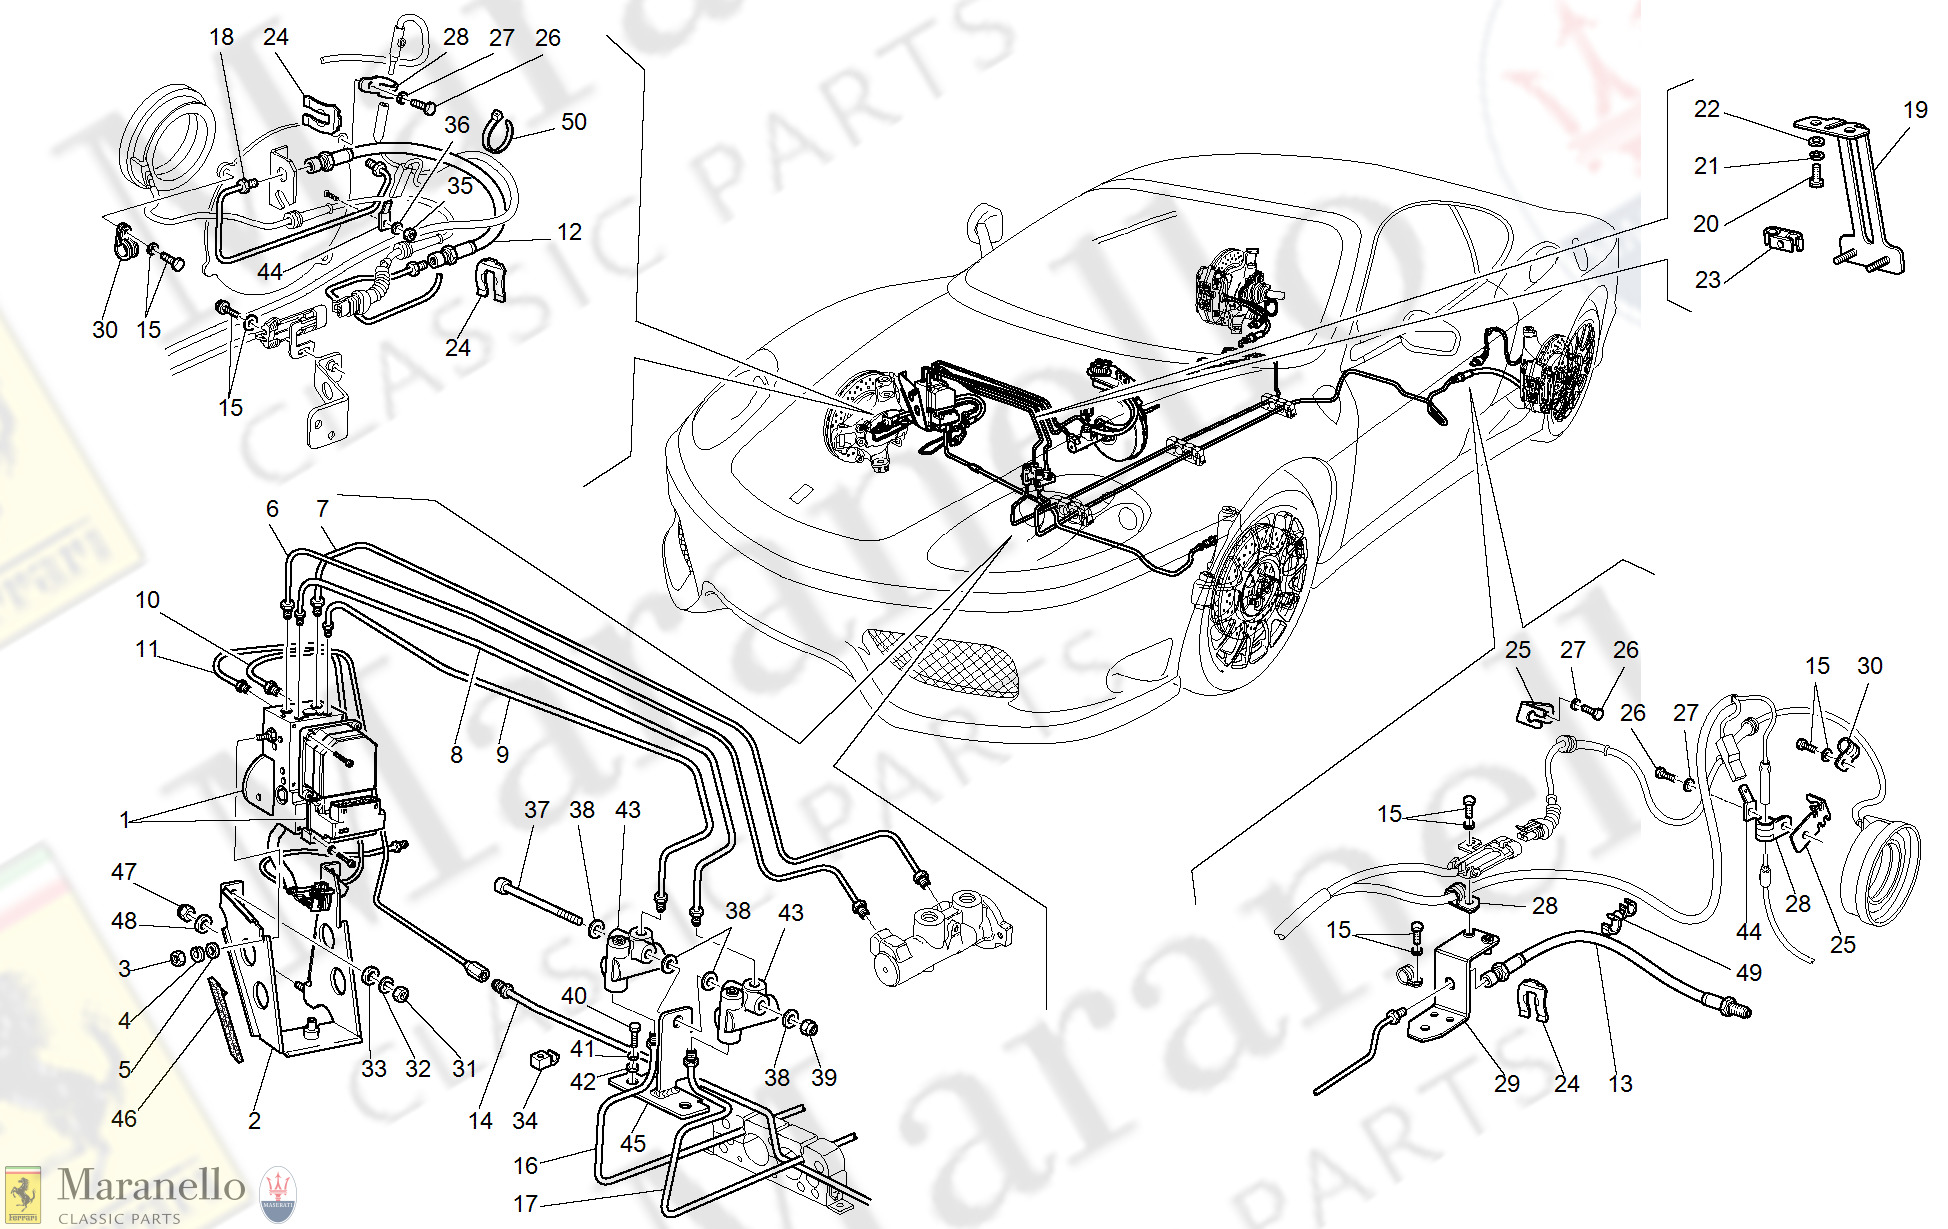 039 Brake System Not For Gd Parts Diagram For Ferrari 360 Challenge Stradale Maranello Classic Parts